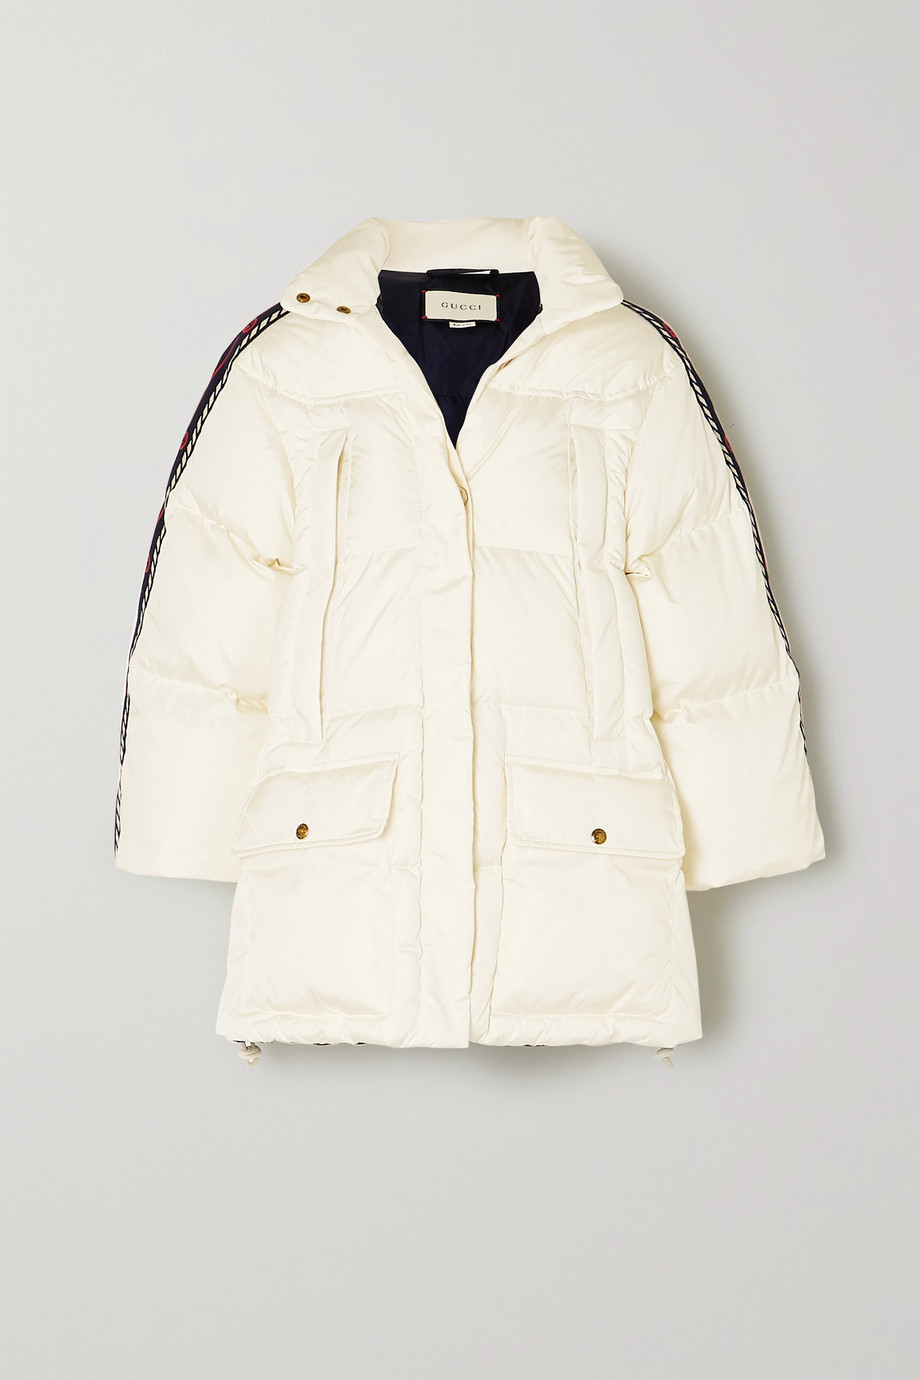 Gucci Oversized webbing-trimmed quilted shell down jacket